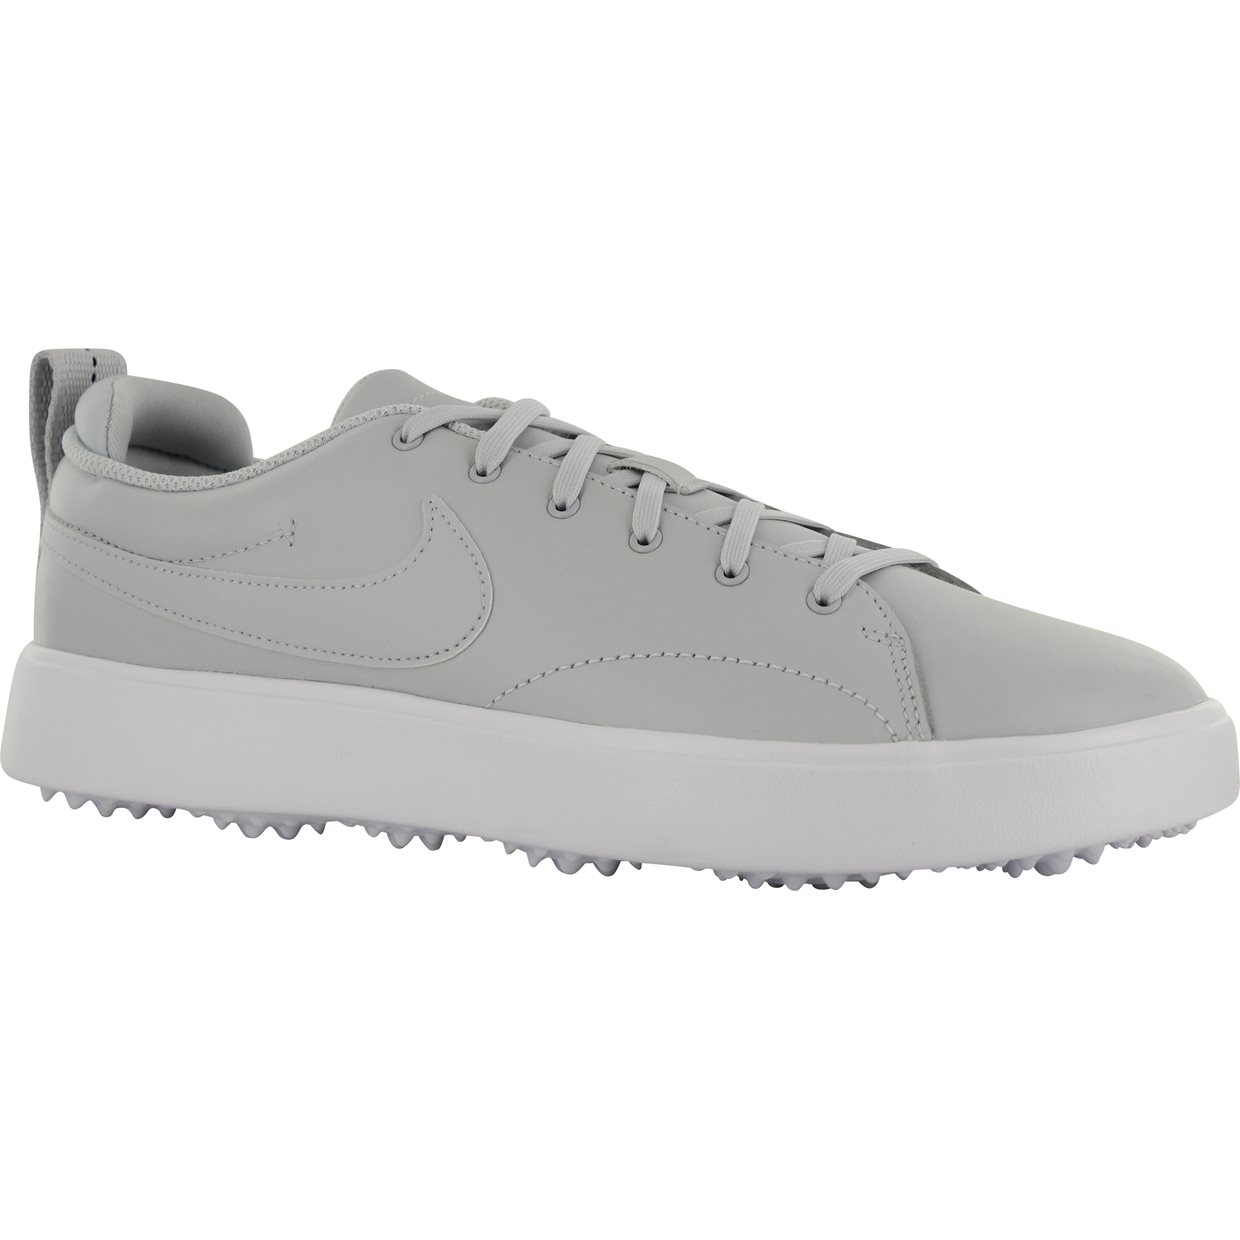 nike course classic spikeless shoes at globalgolfcom